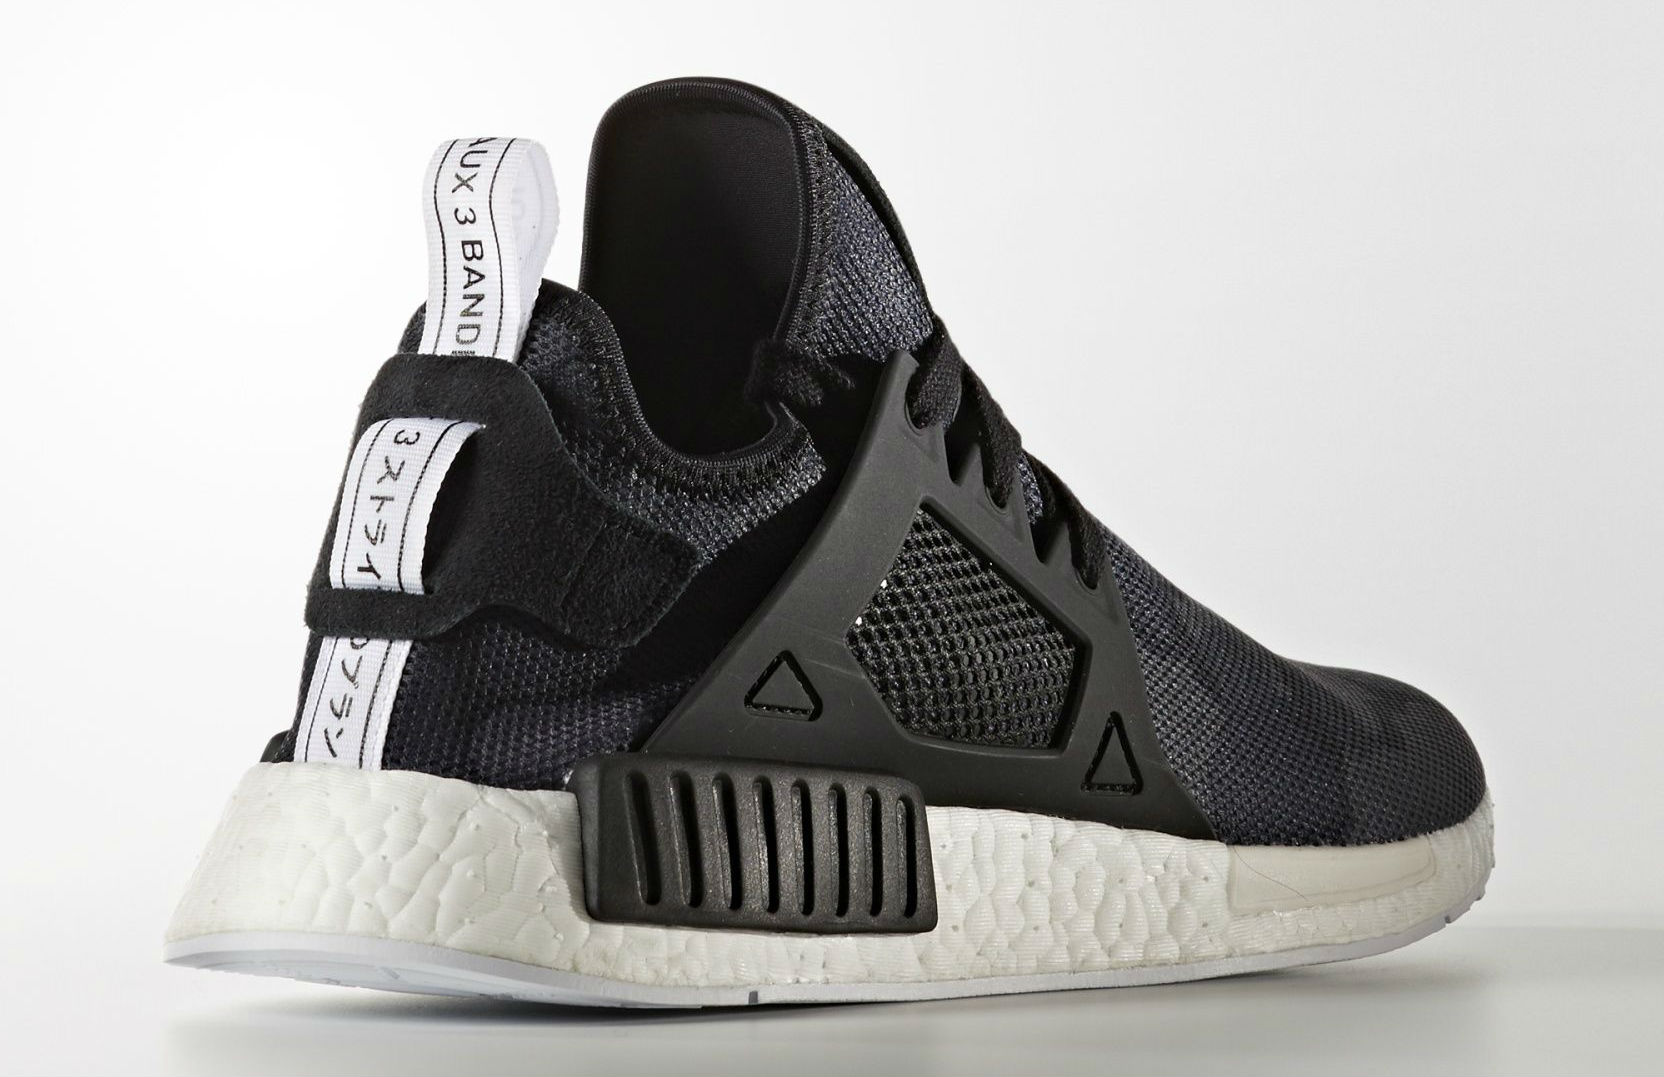 5406f7be5e36e UK Outlet Adidas NMD XR1 Primeknit Utility Black White BB2370